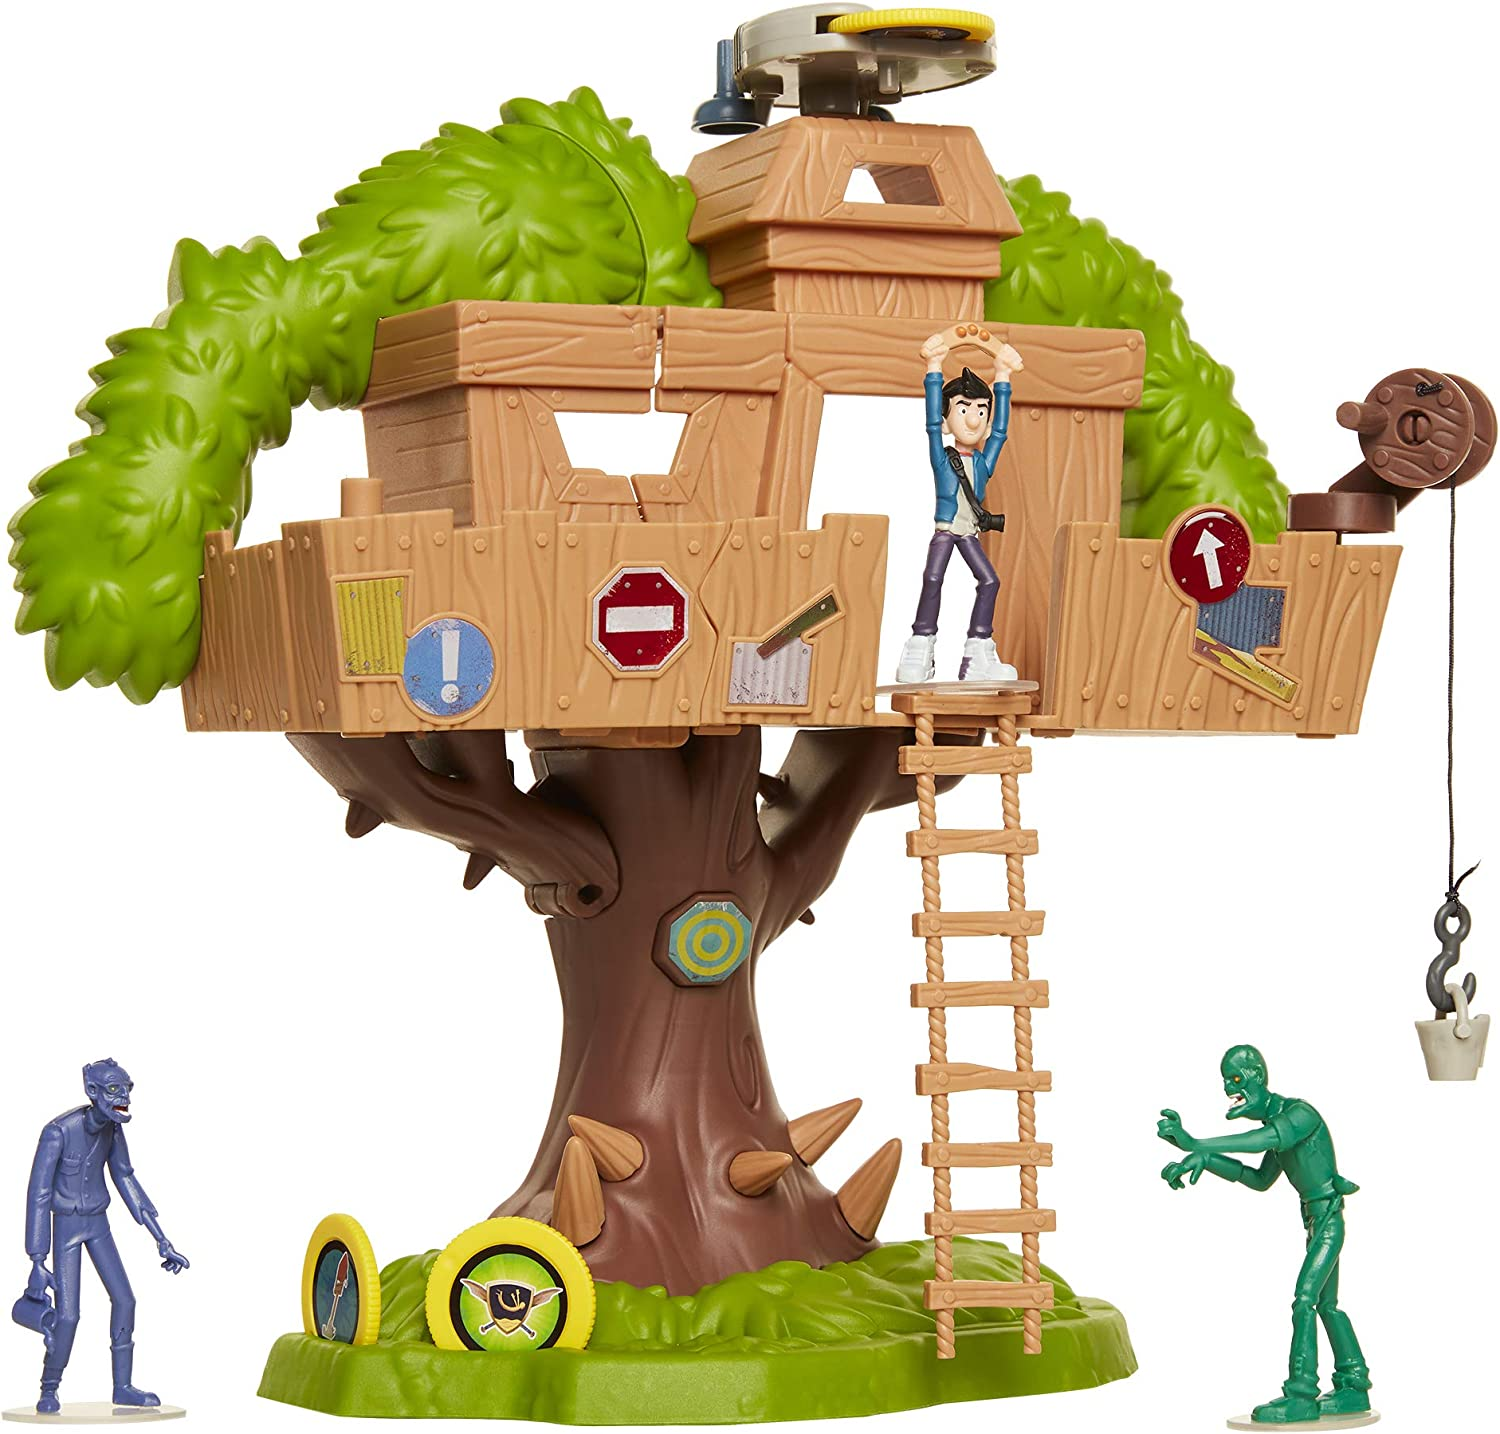 Amazon Com The Last Kids On Earth Tree House Of Awesomeness Playset Includes Exclusive Jack Action Figure 2 Zombies Toys Games Learn your english nursery rhymes сезон 4 • серия 1. the last kids on earth tree house of awesomeness playset includes exclusive jack action figure 2 zombies